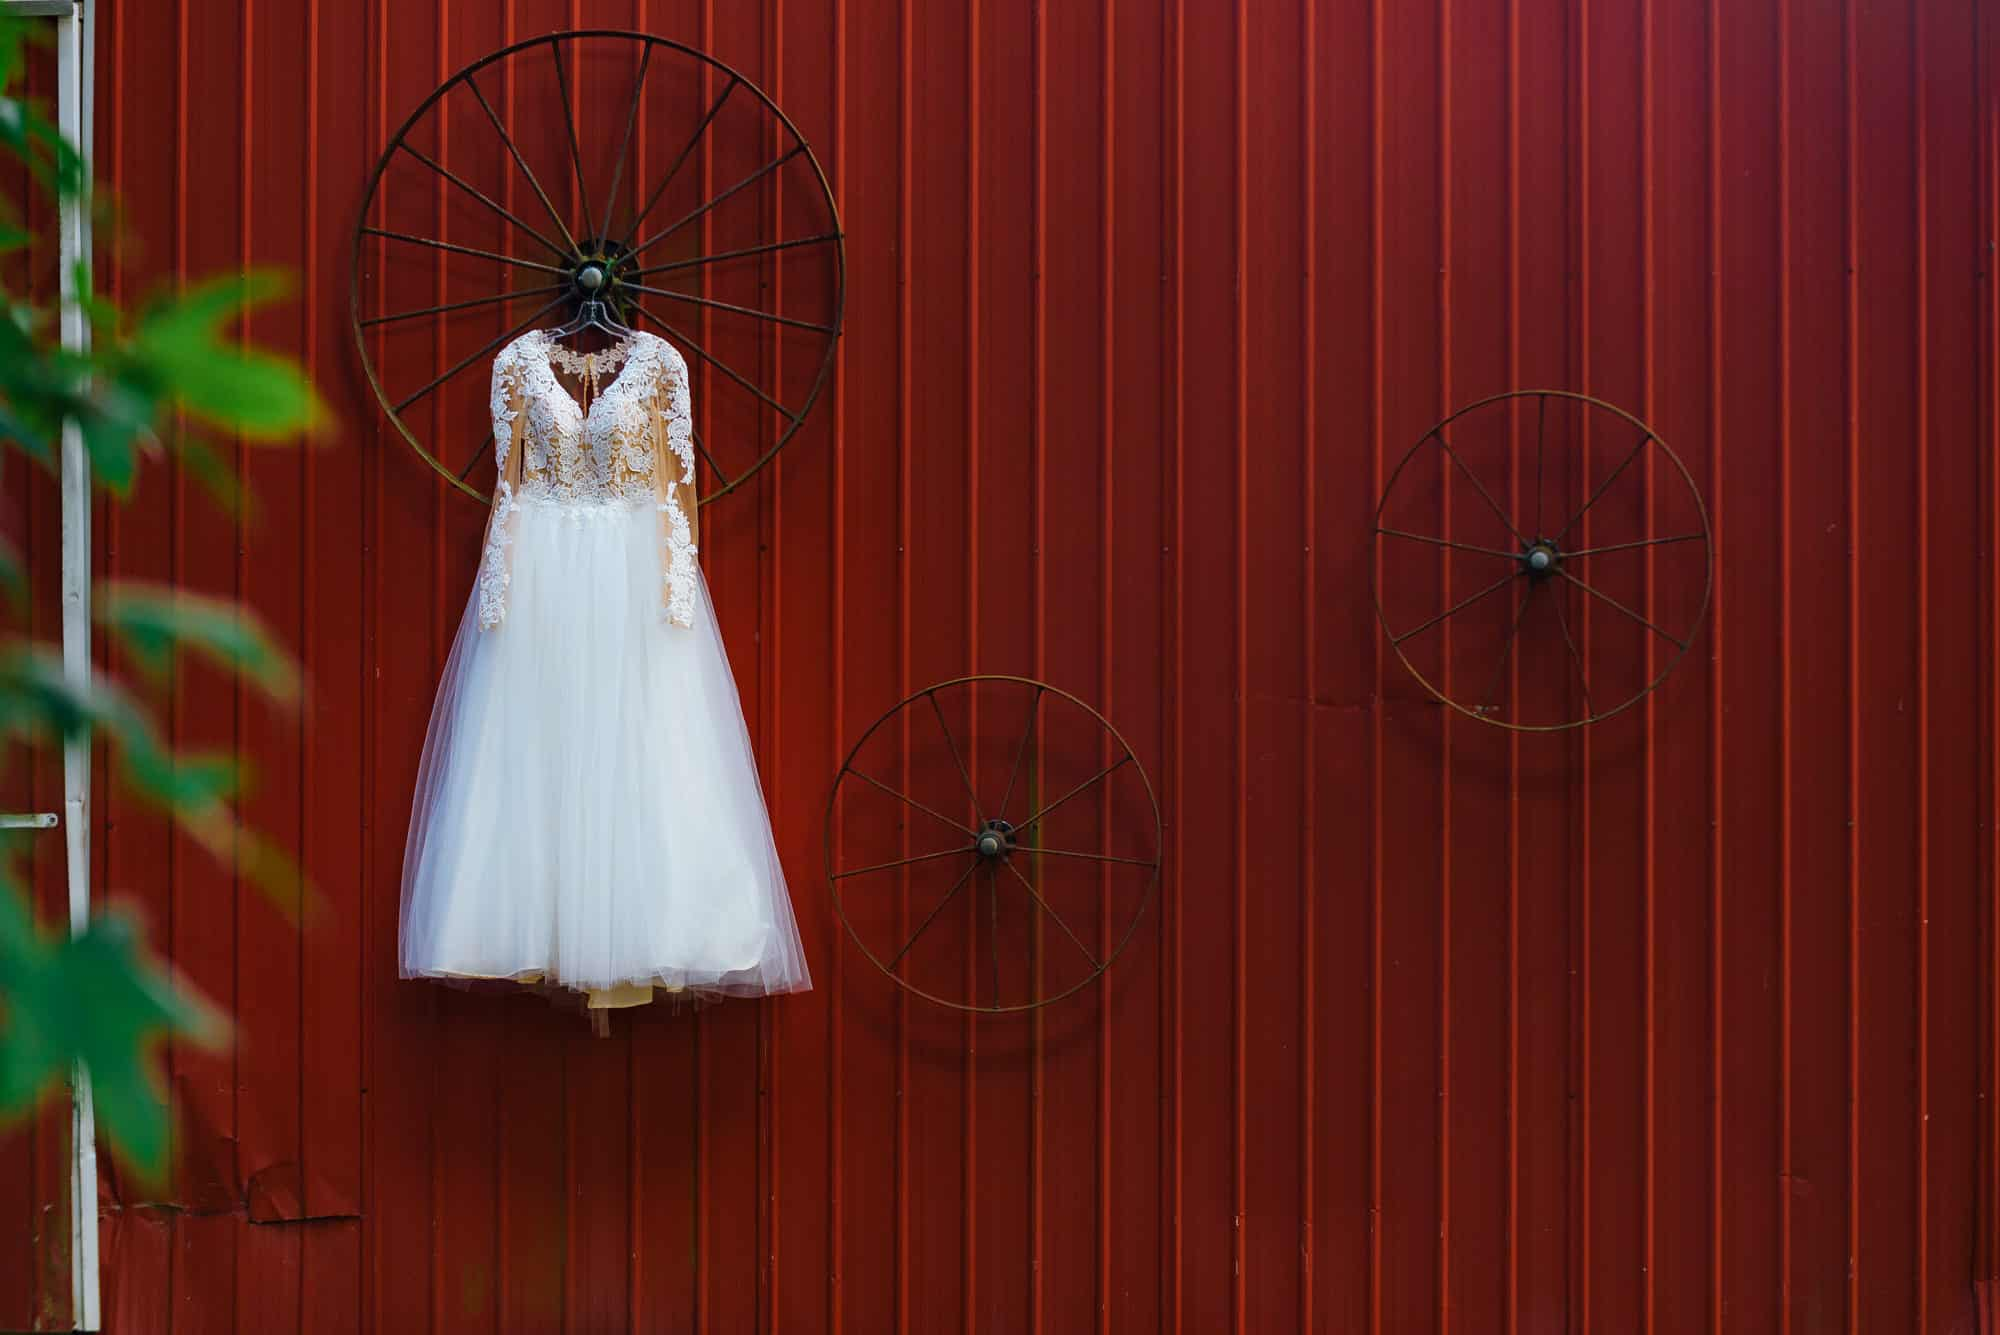 wedding dresses, dress hanging from red barn